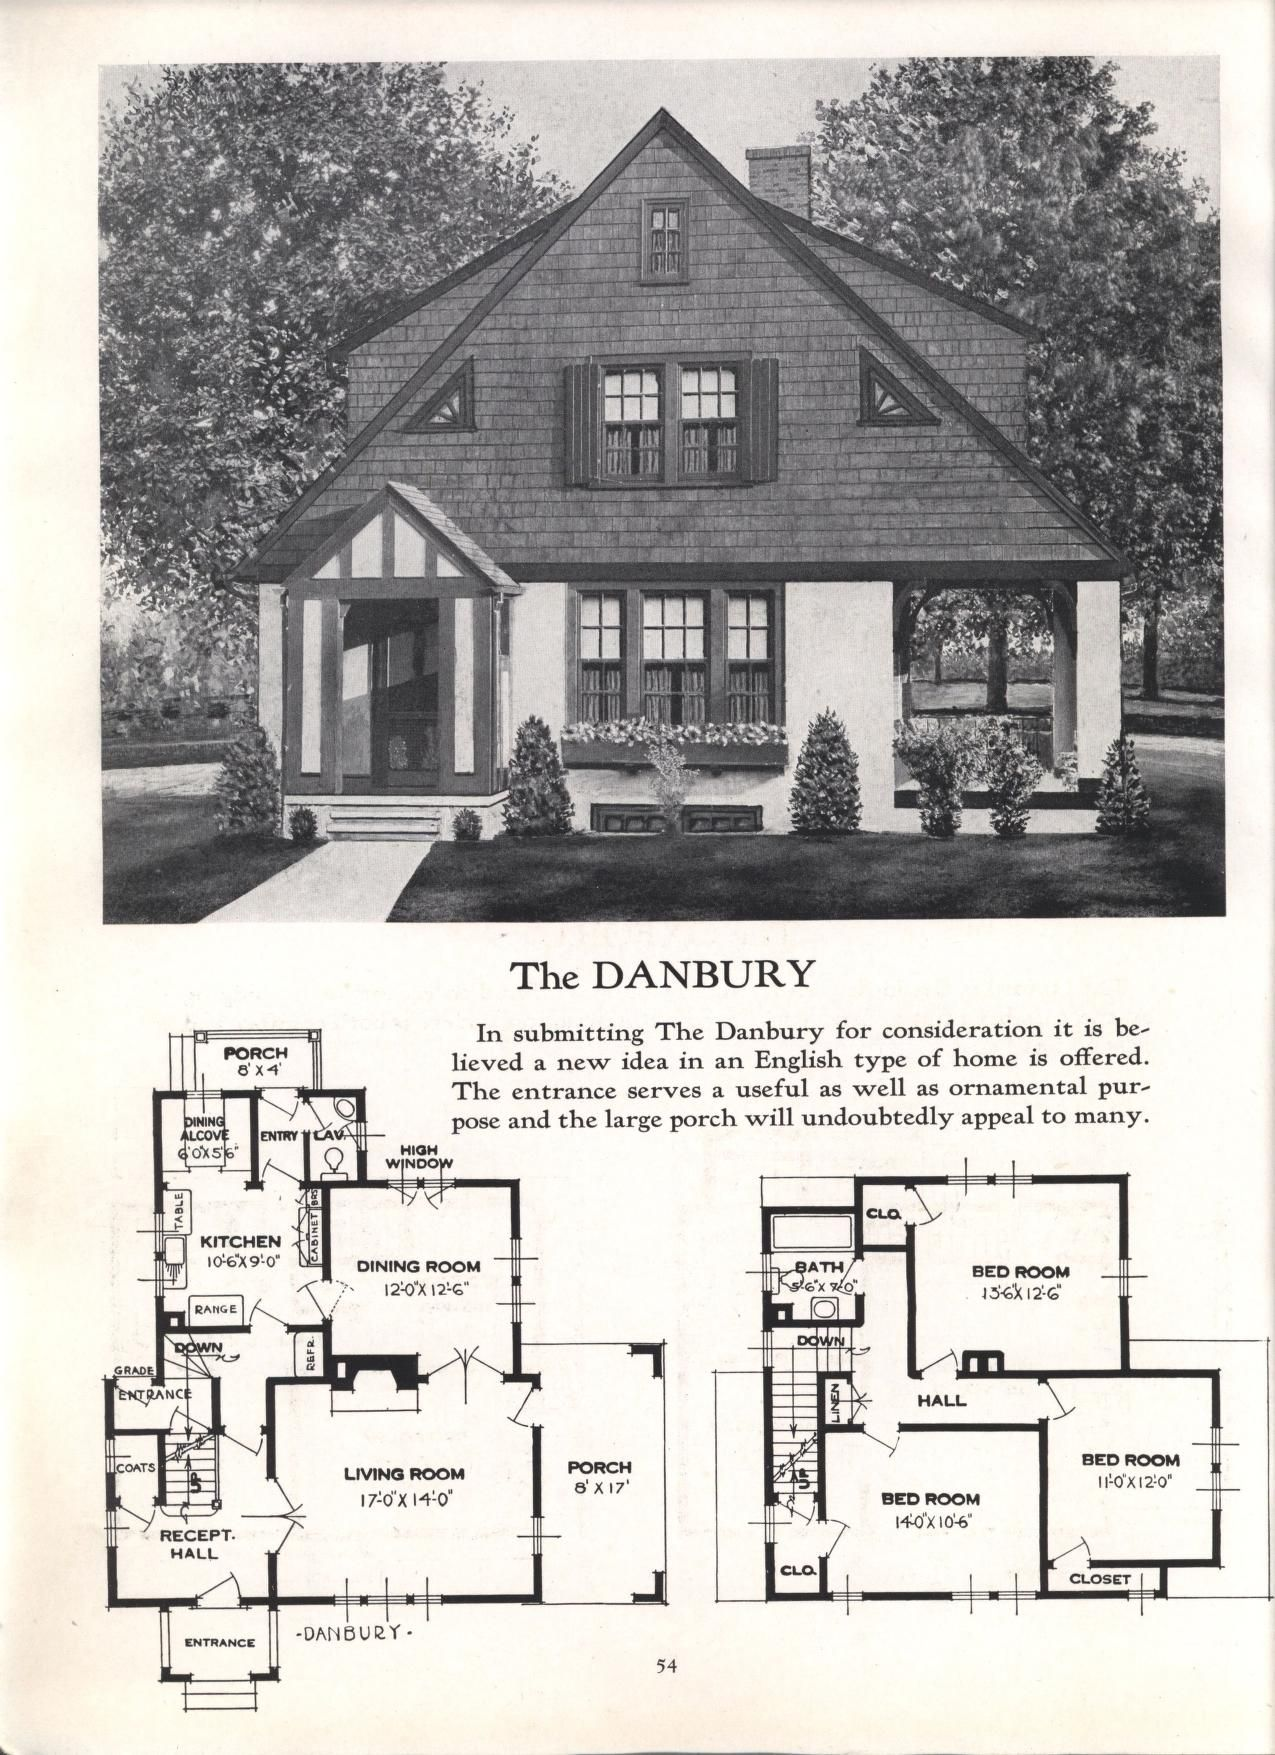 Better Homes At Lower Cost No 17 By Standard Homes Co Publication Date 1930 The Danbury Vintage House Plans House Plans Historic Homes